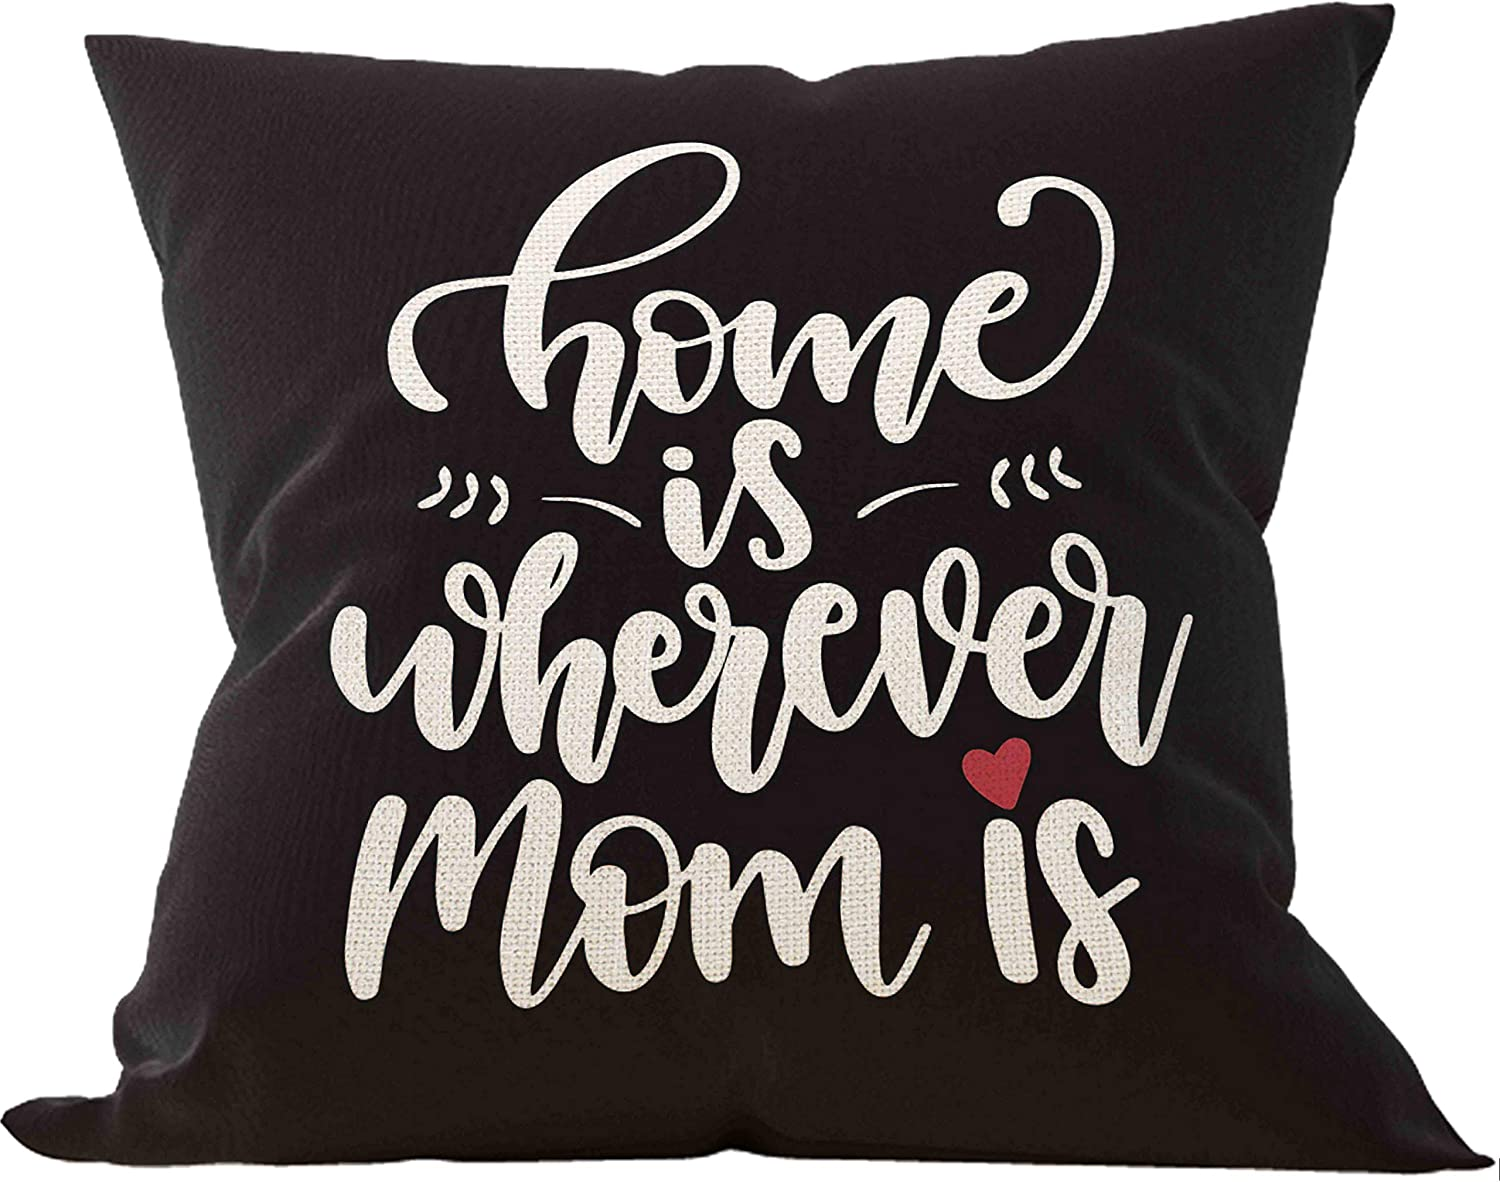 Home is Wherever Mom is Throw Pillow Case, Gift for Mom's birthday, Mom Gifts, Gift for Mom from Daughter, New Mom Gift, 18 x 18 Inch Decorative Cotton Linen Cushion Cover for Sofa Couch Bed